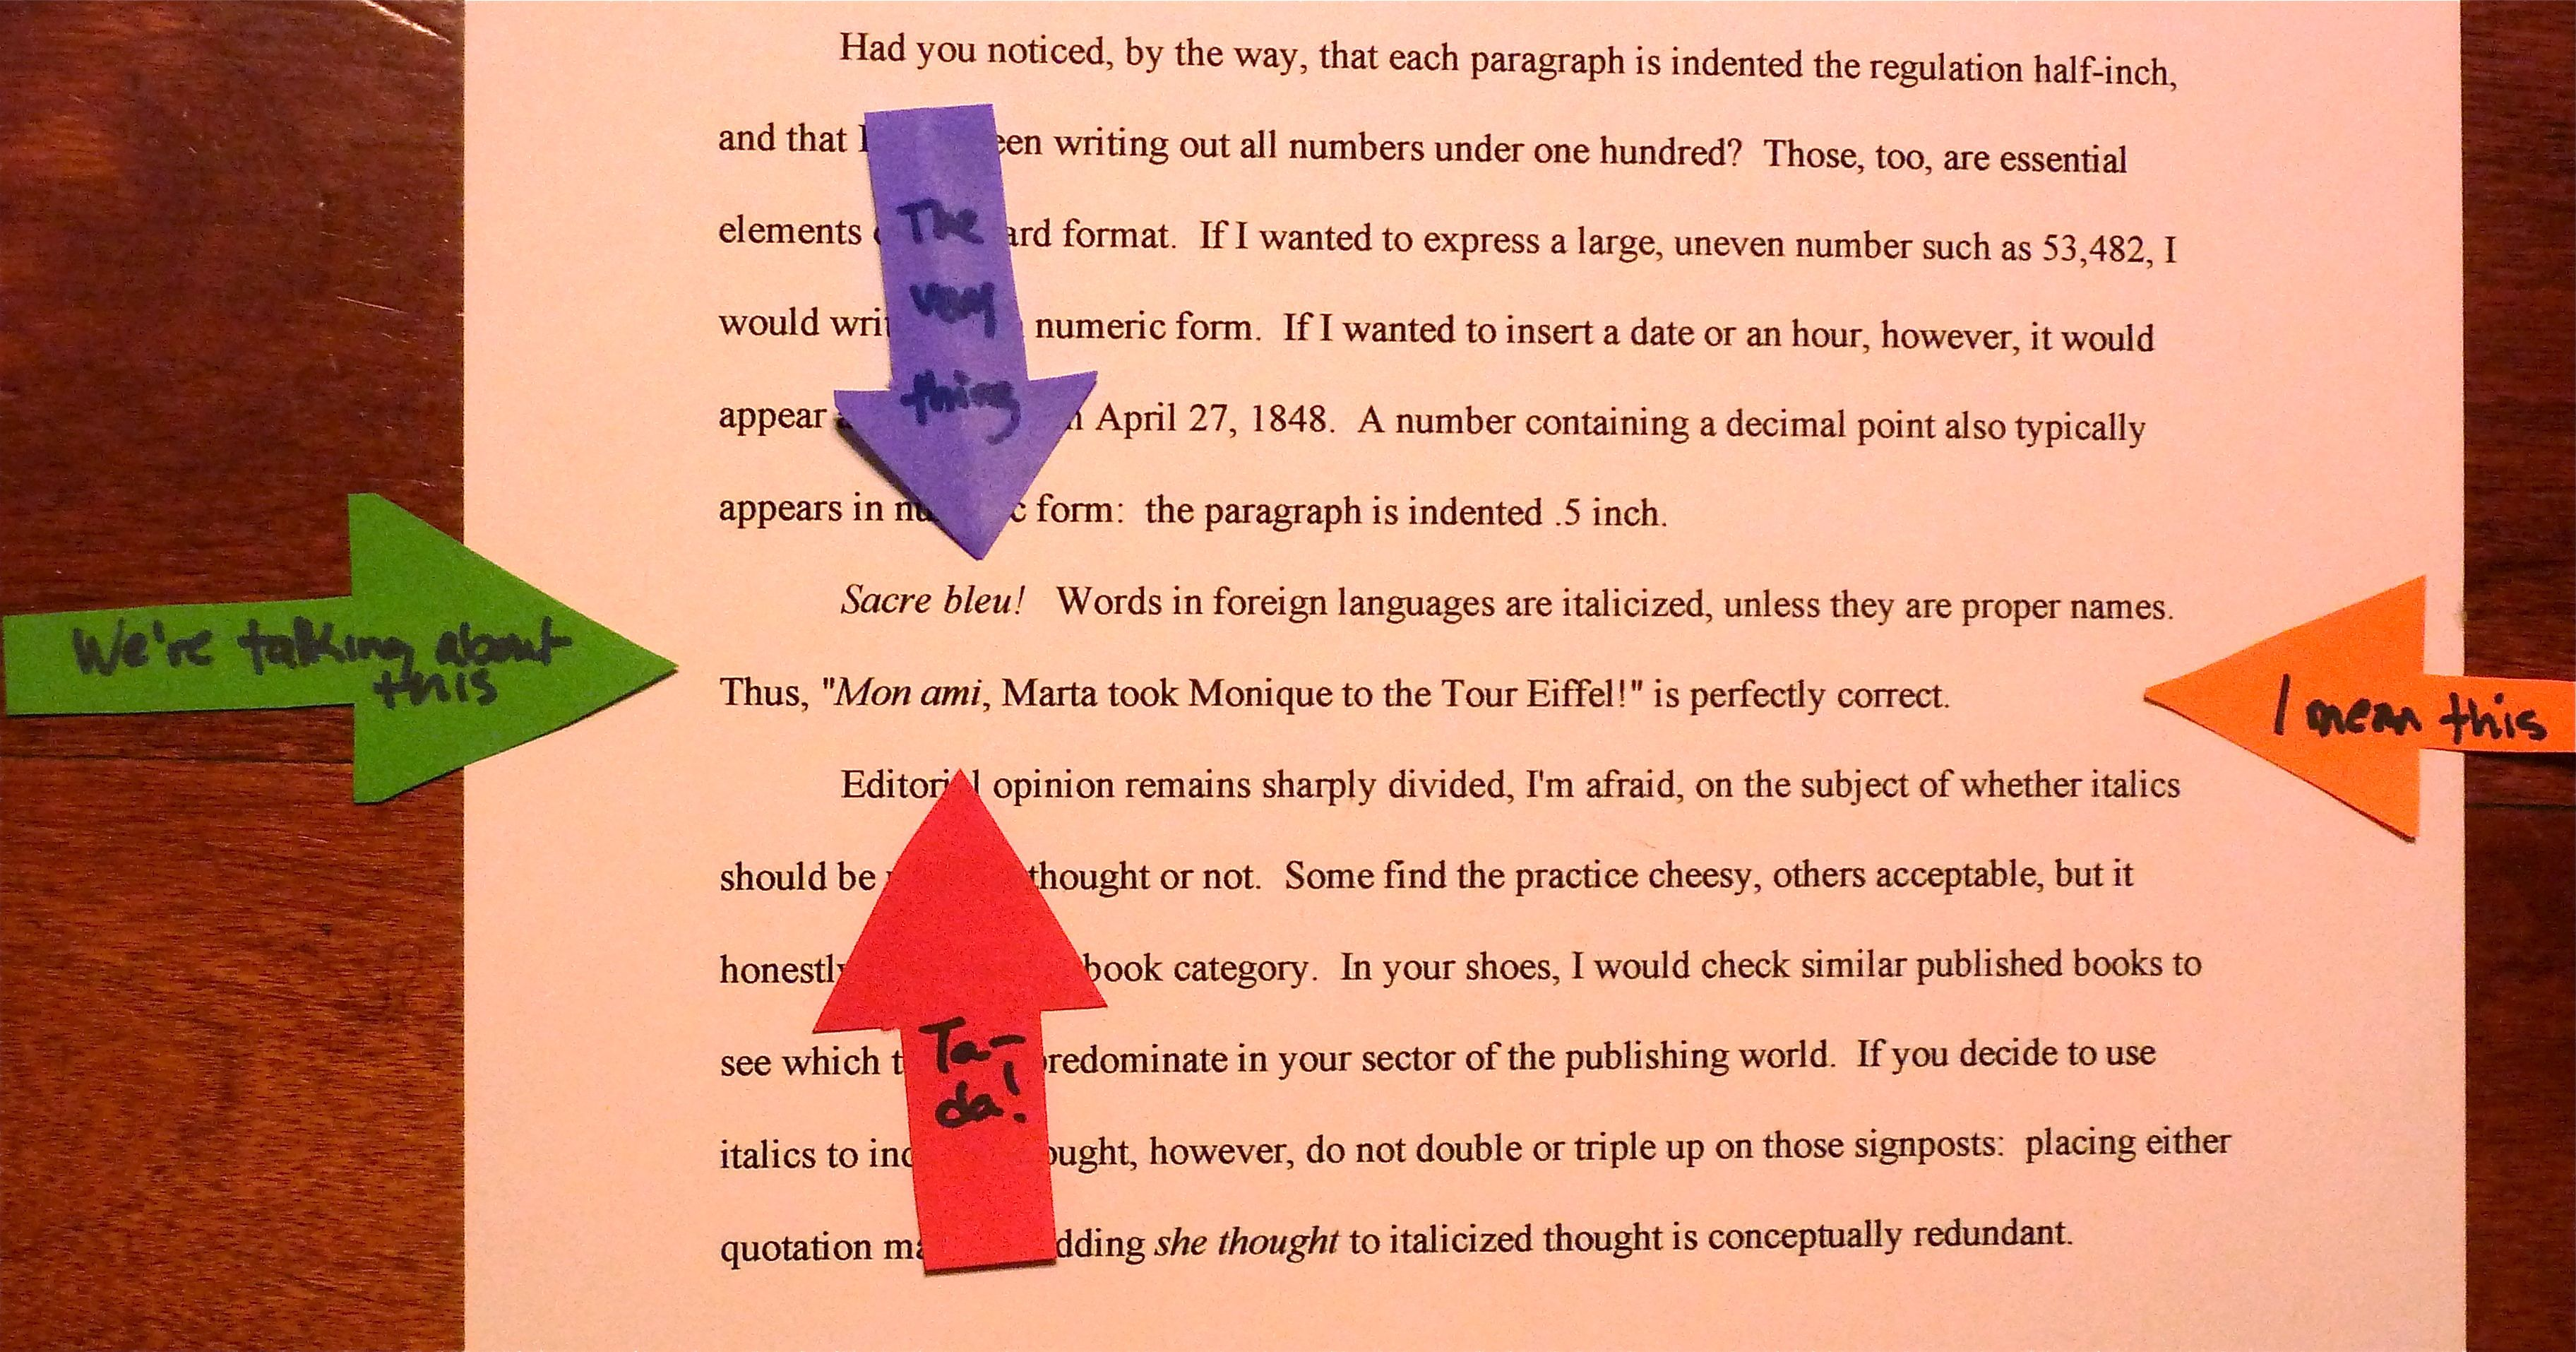 using quotes in college essays Starting my college essay with a quote i want to make my essay different from the boring old same old essays, i want it to stand out from the others i thought about starting it with a question, but i think a quote will be better.